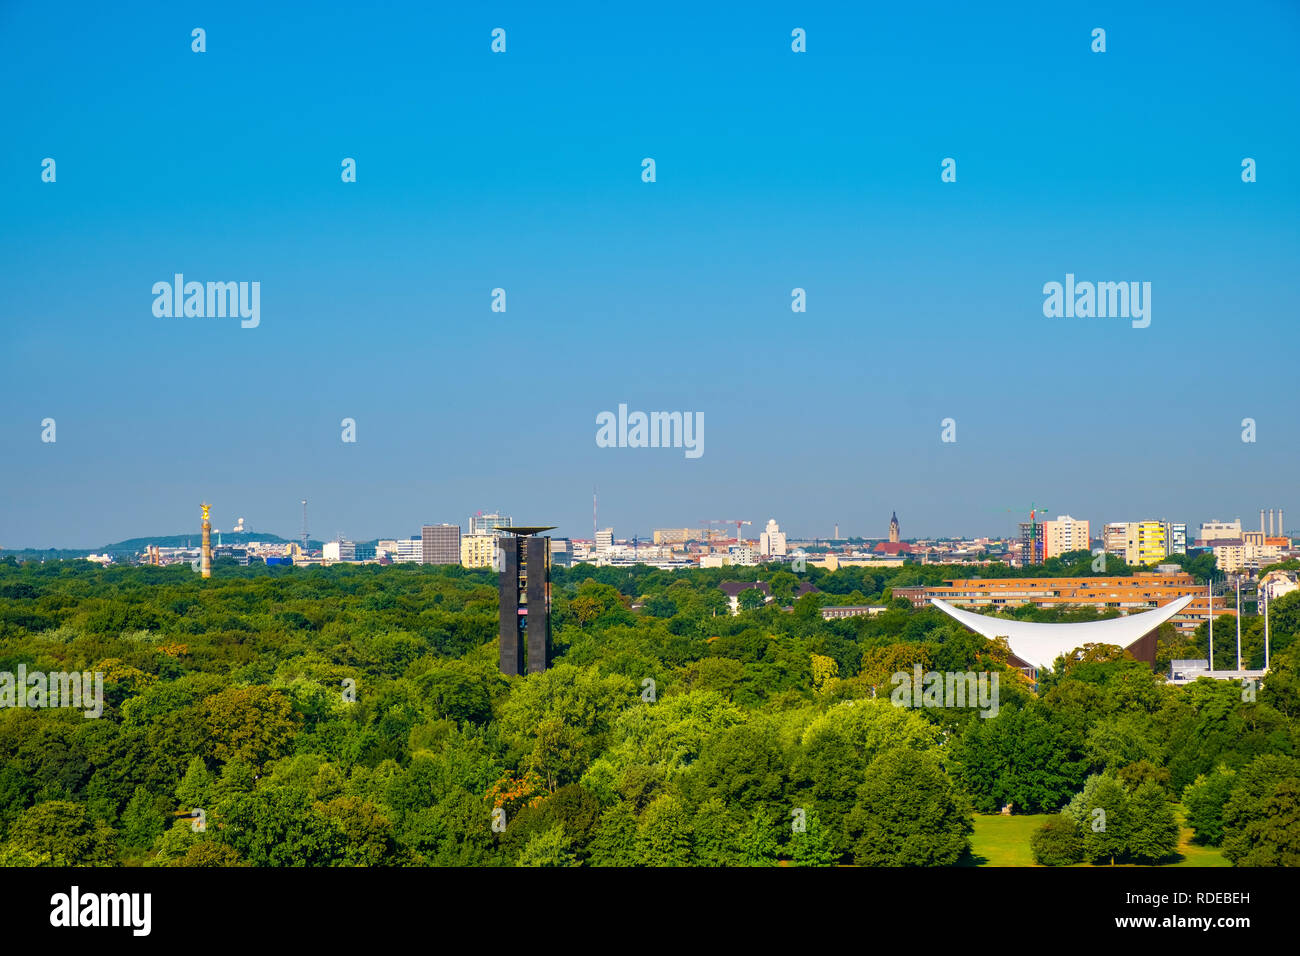 Berlin, Berlin state / Germany - 2018/07/31: Panoramic view of the Groser Tiergarten park with modern House of the World's Cultures - Haus der Kulture - Stock Image